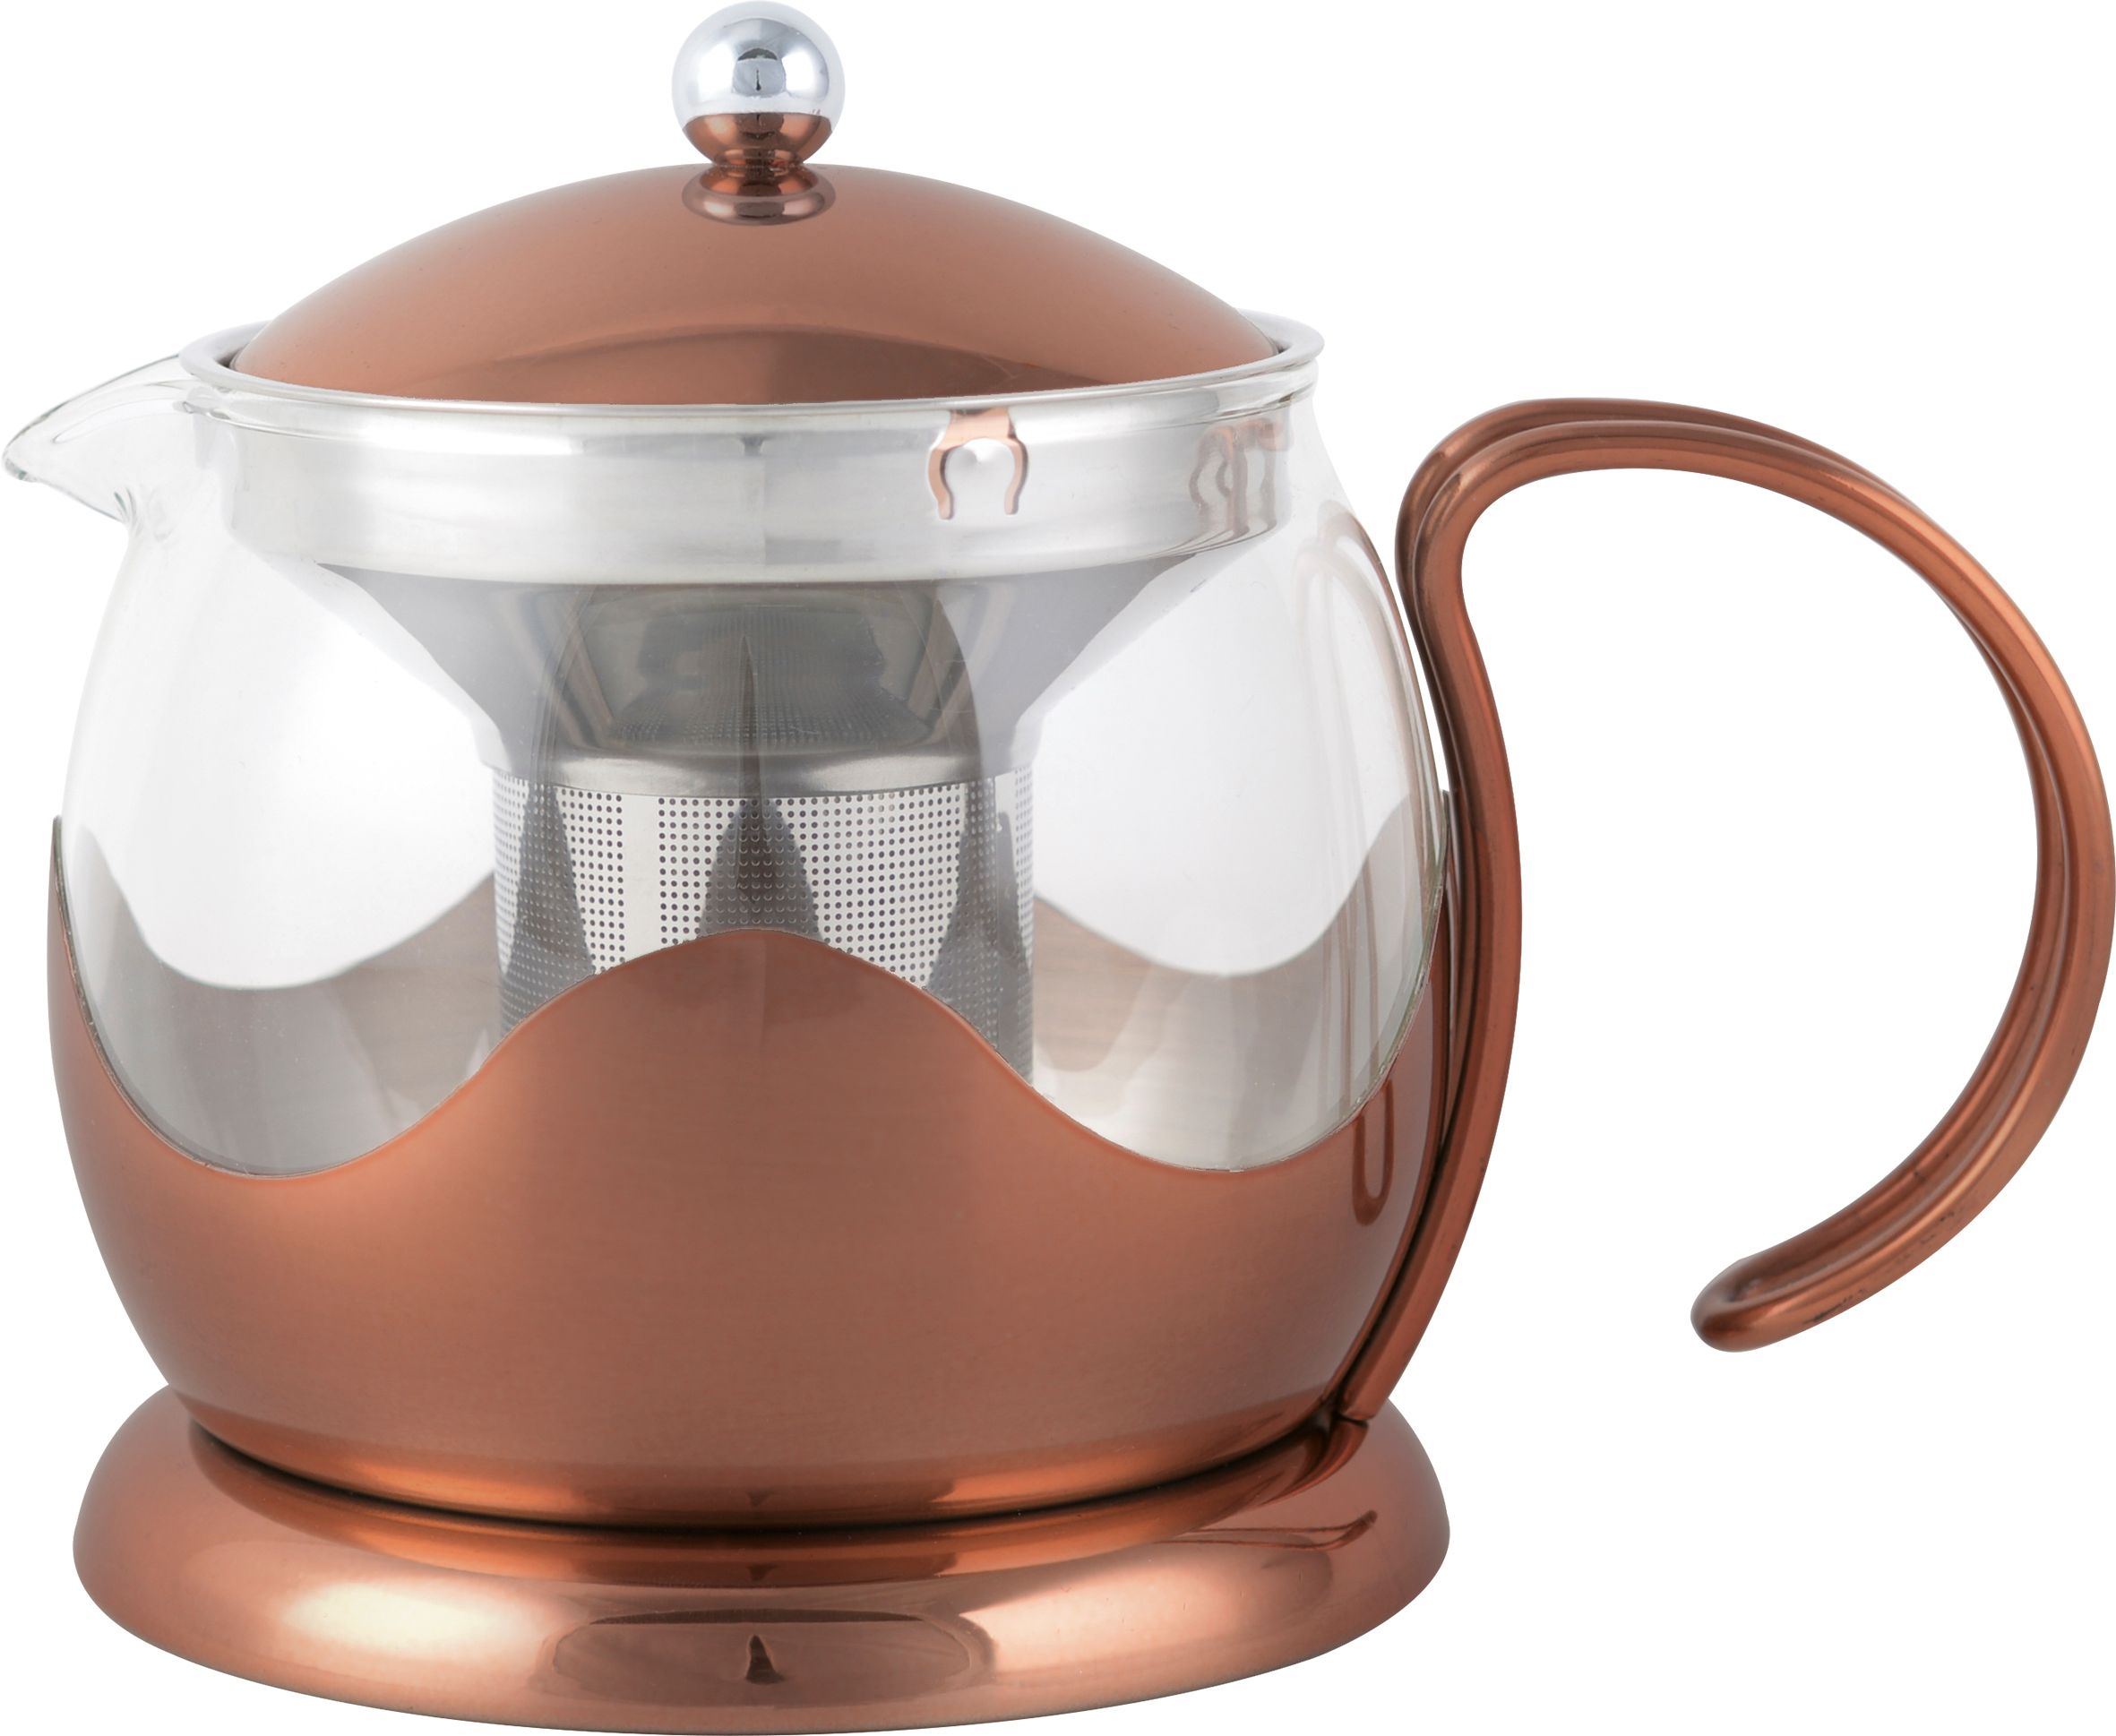 Image of La Cafetiere Origins teapot 1200ml, copper